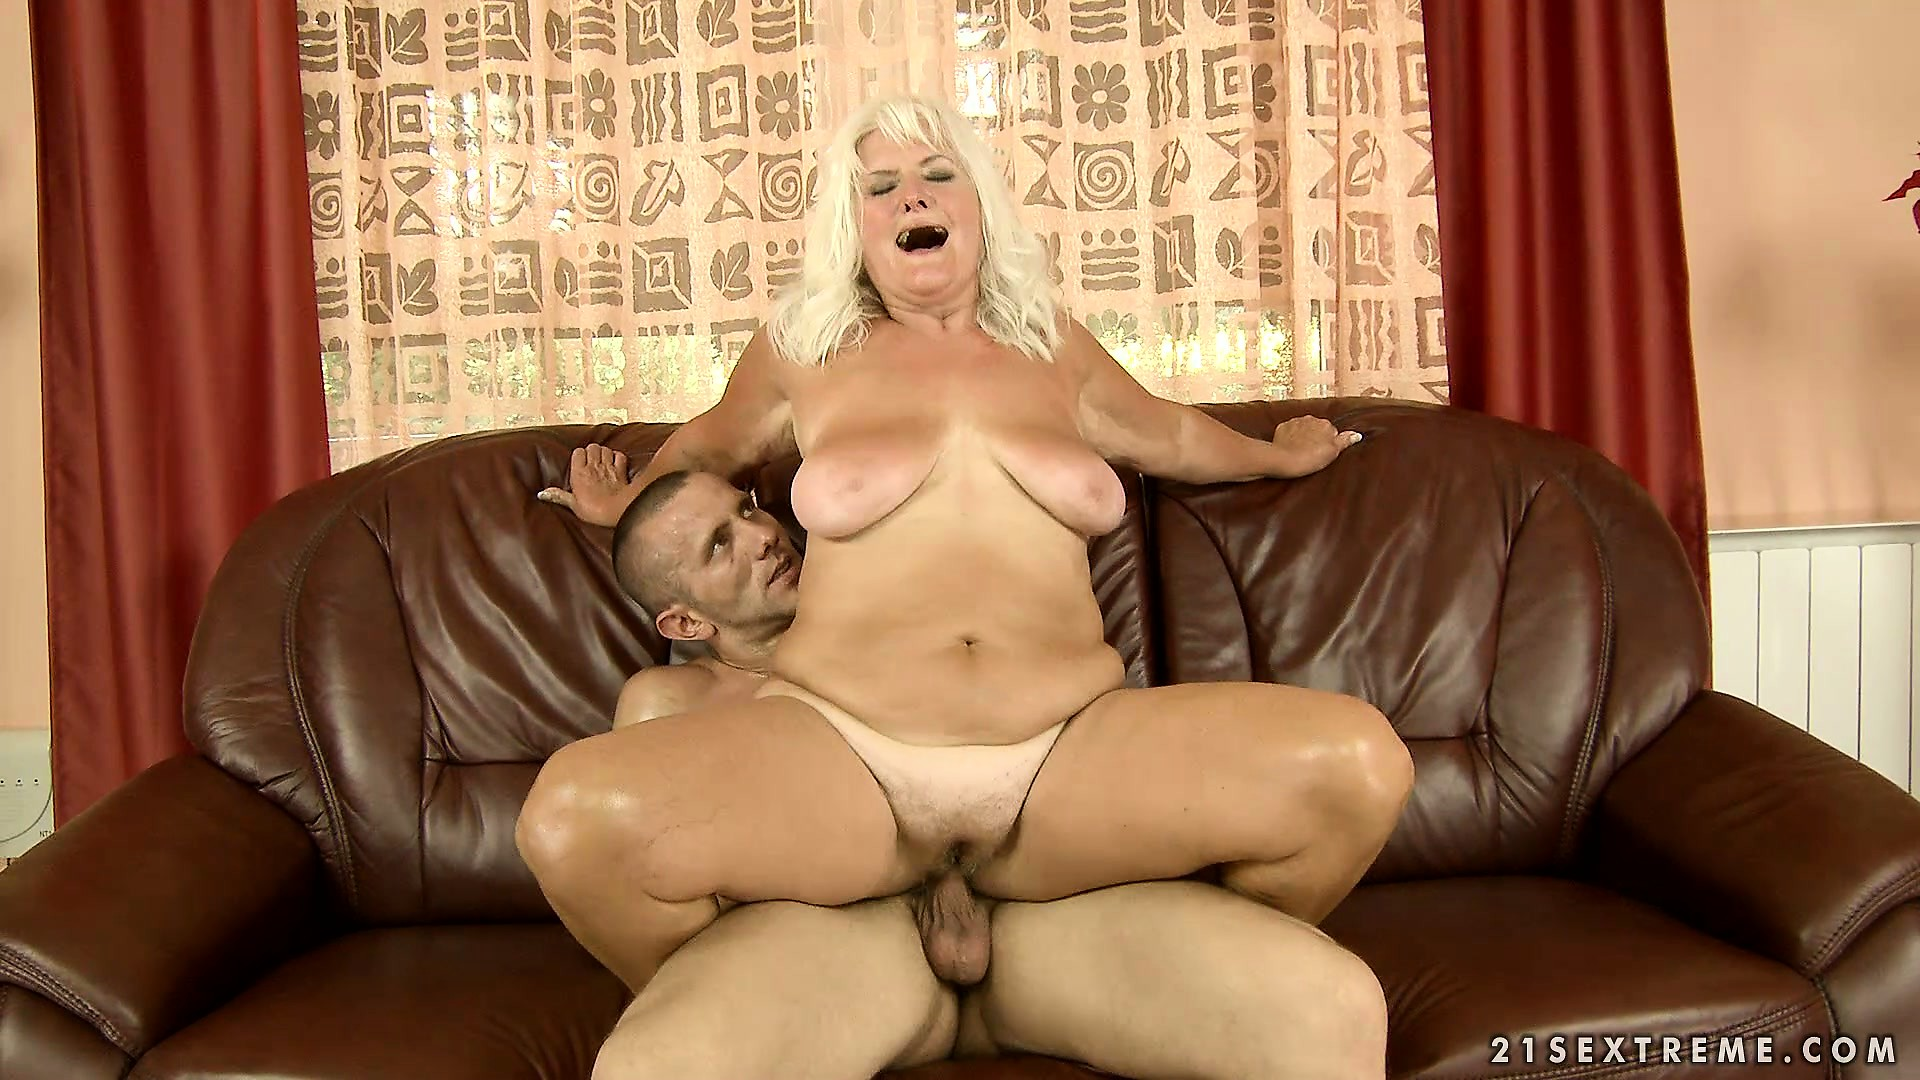 Porno Video of Fat Blonde Hoochie Screams Her Head Off Riding On A Young Dick